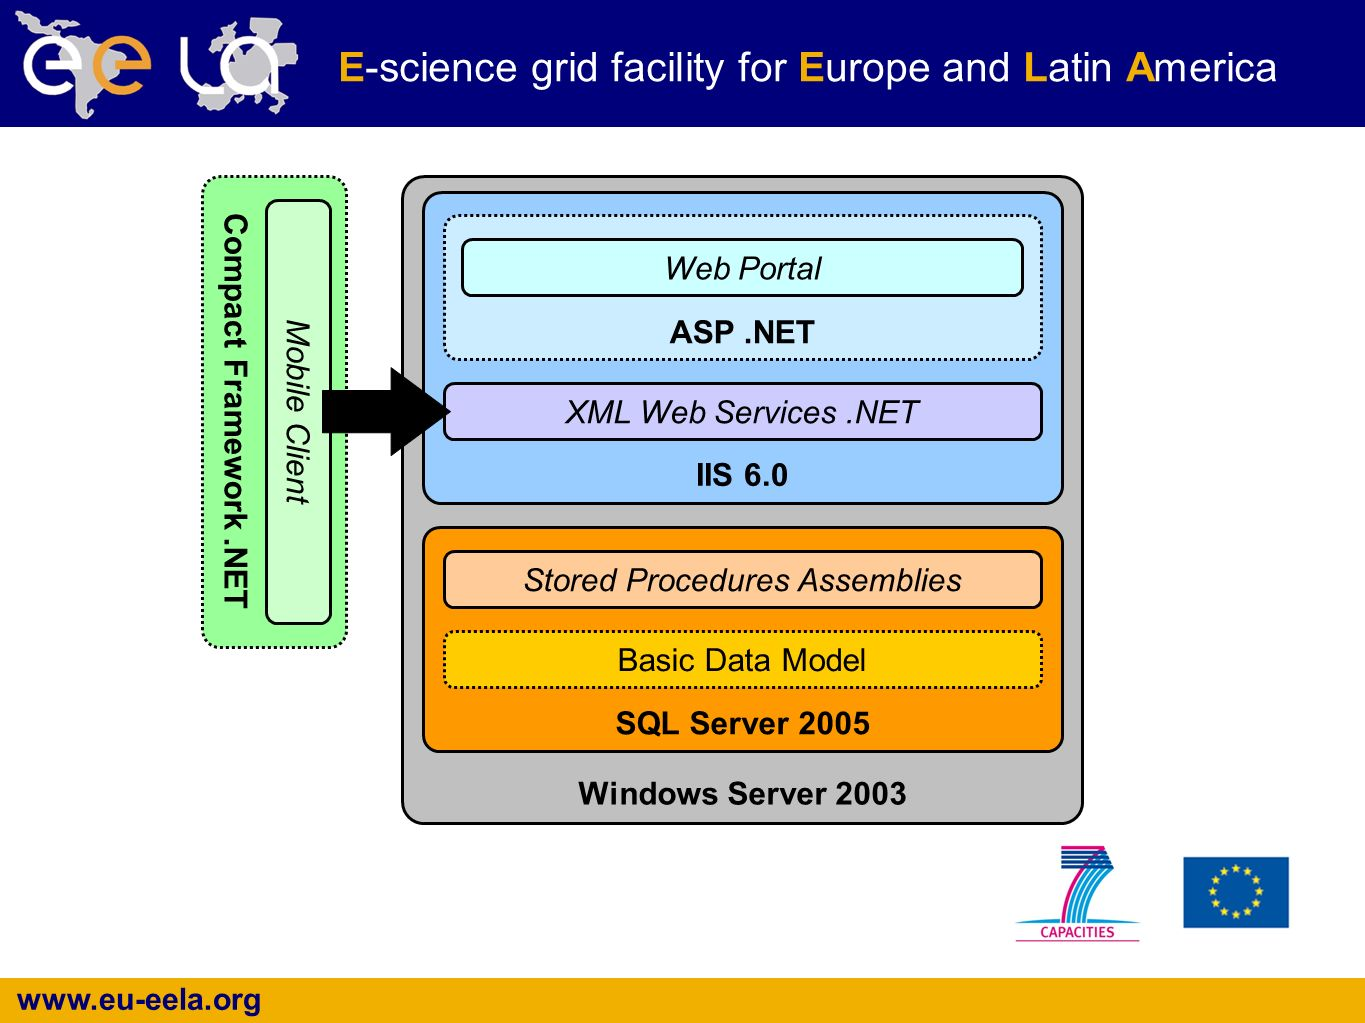 www.eu-eela.org E-science grid facility for Europe and Latin America Compact Framework.NET Mobile Client Windows Server 2003 IIS 6.0 SQL Server 2005 Stored Procedures Assemblies Basic Data Model XML Web Services.NET ASP.NET Web Portal